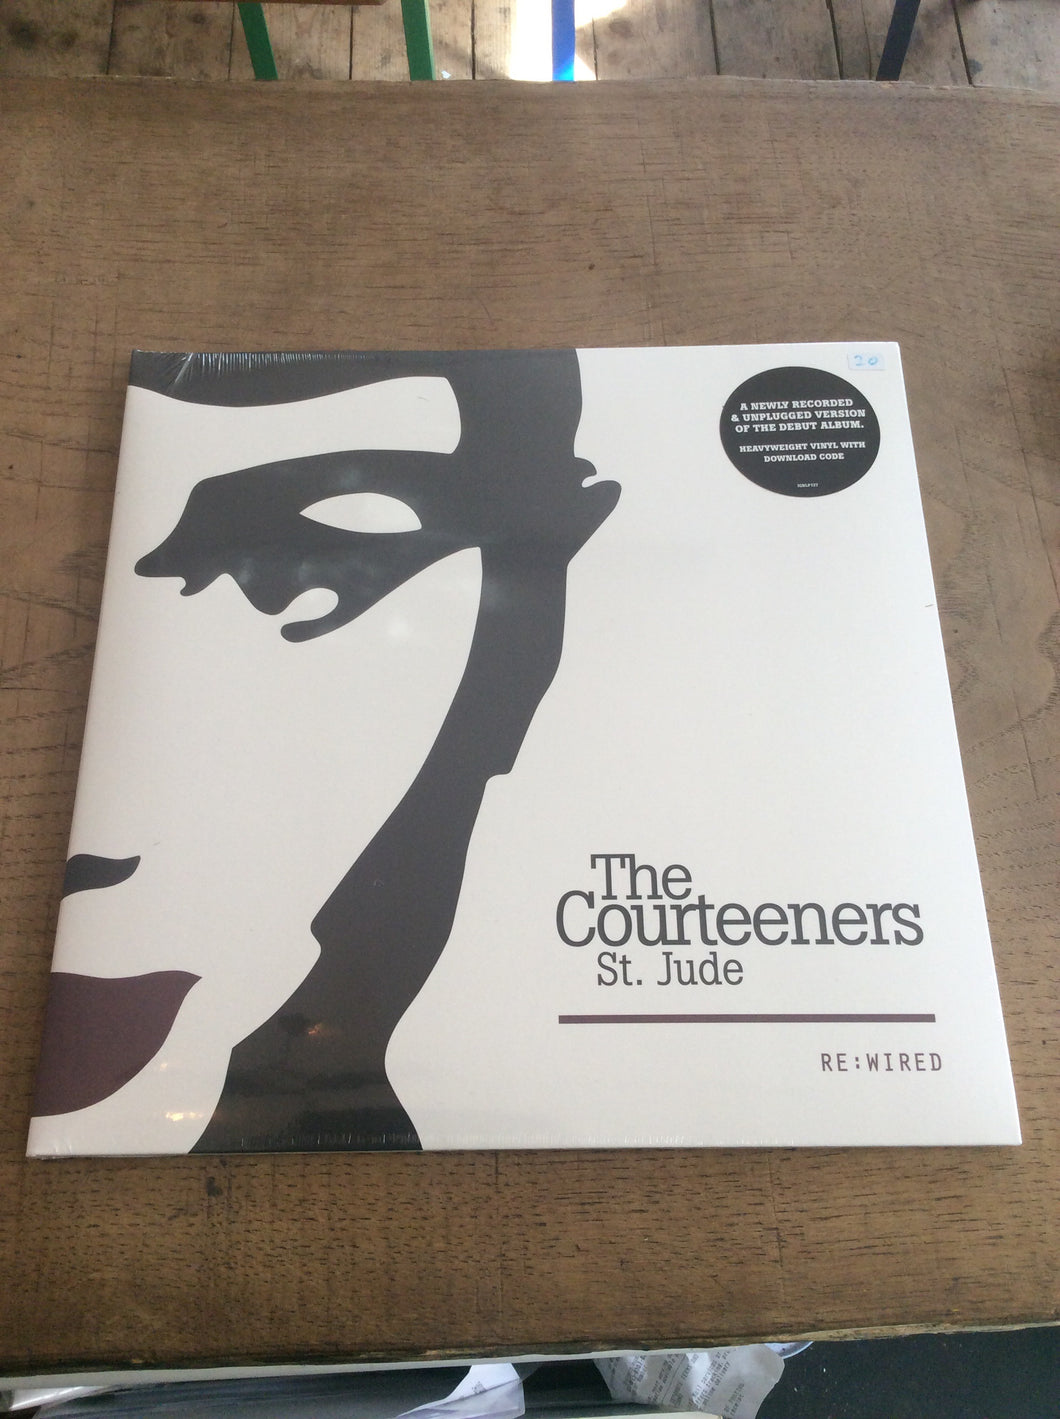 The Courteeners - St Jude Re:Wired